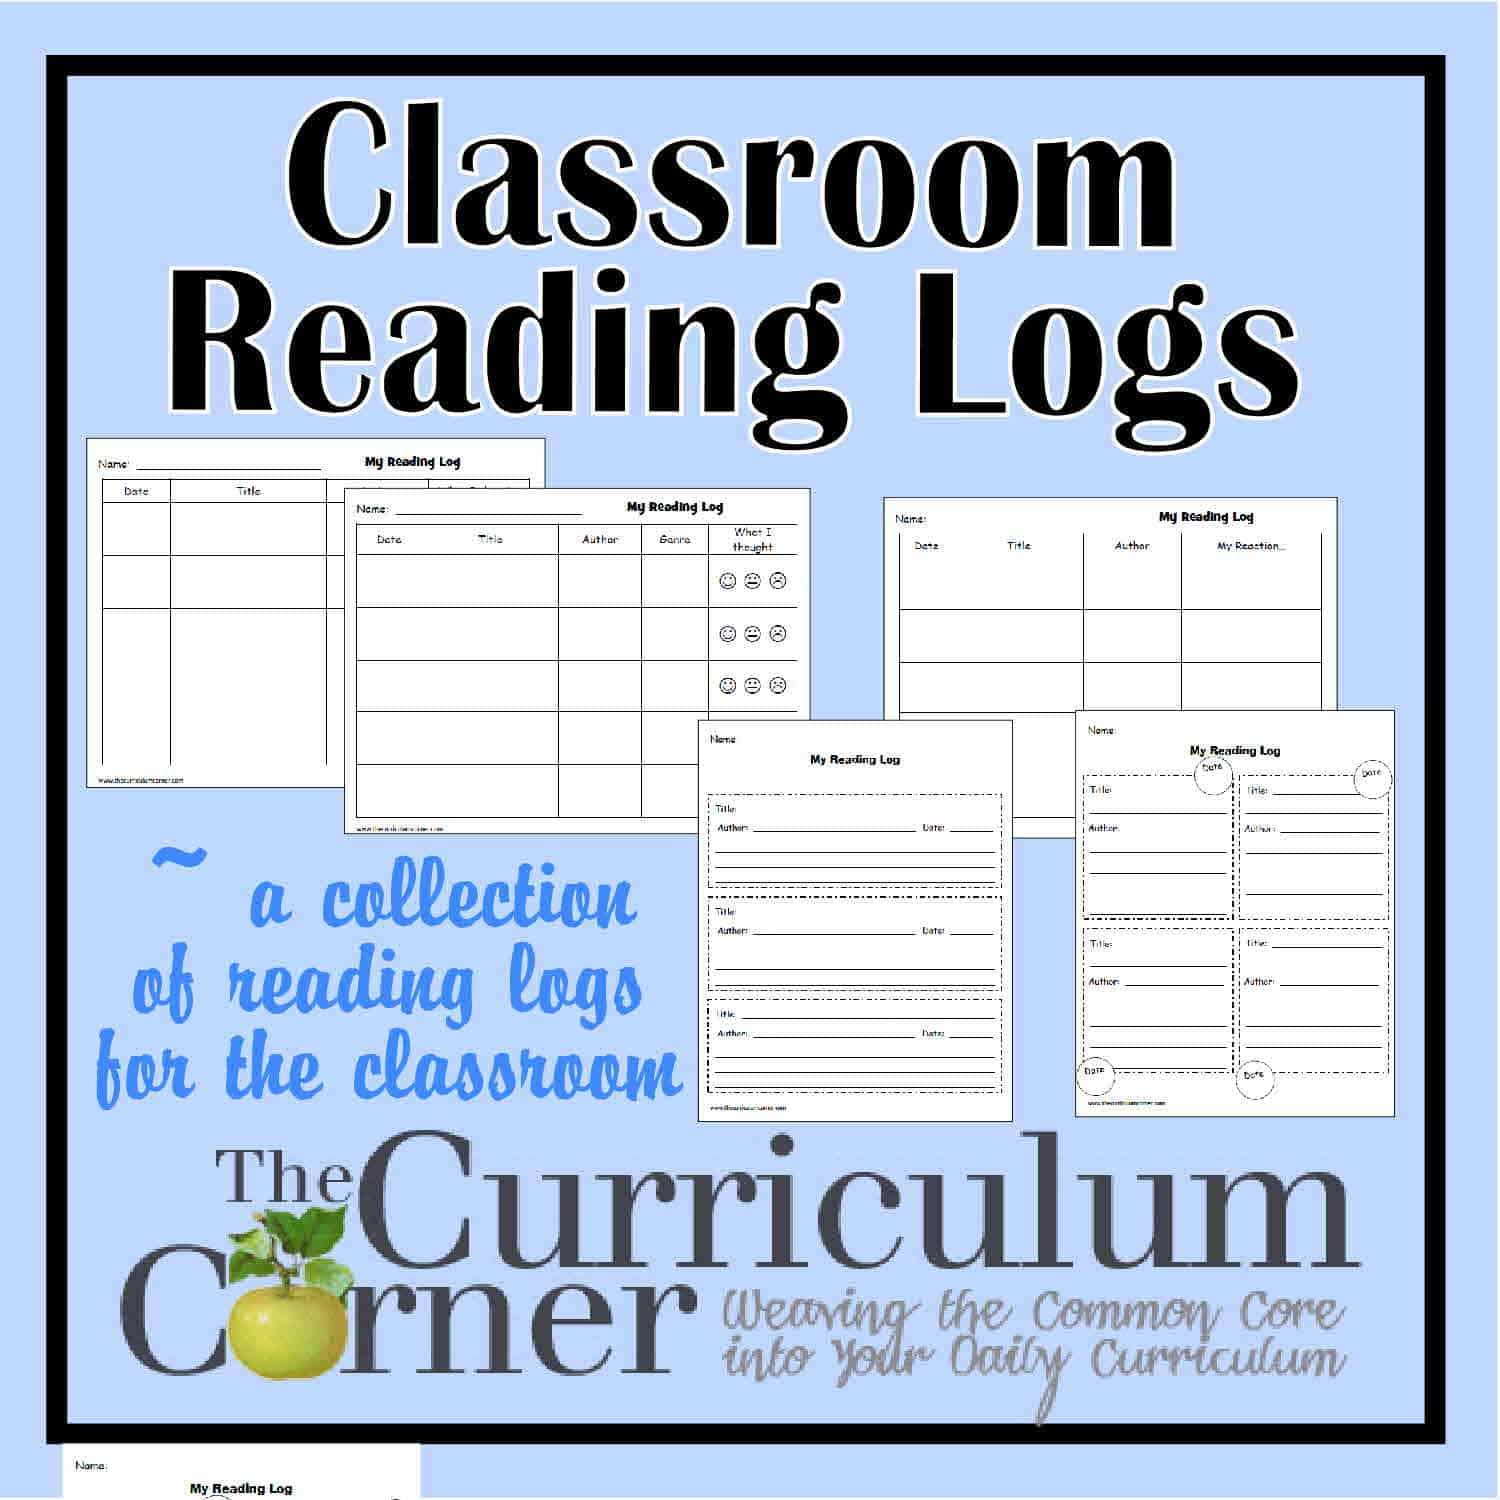 Classroom Reading Logs